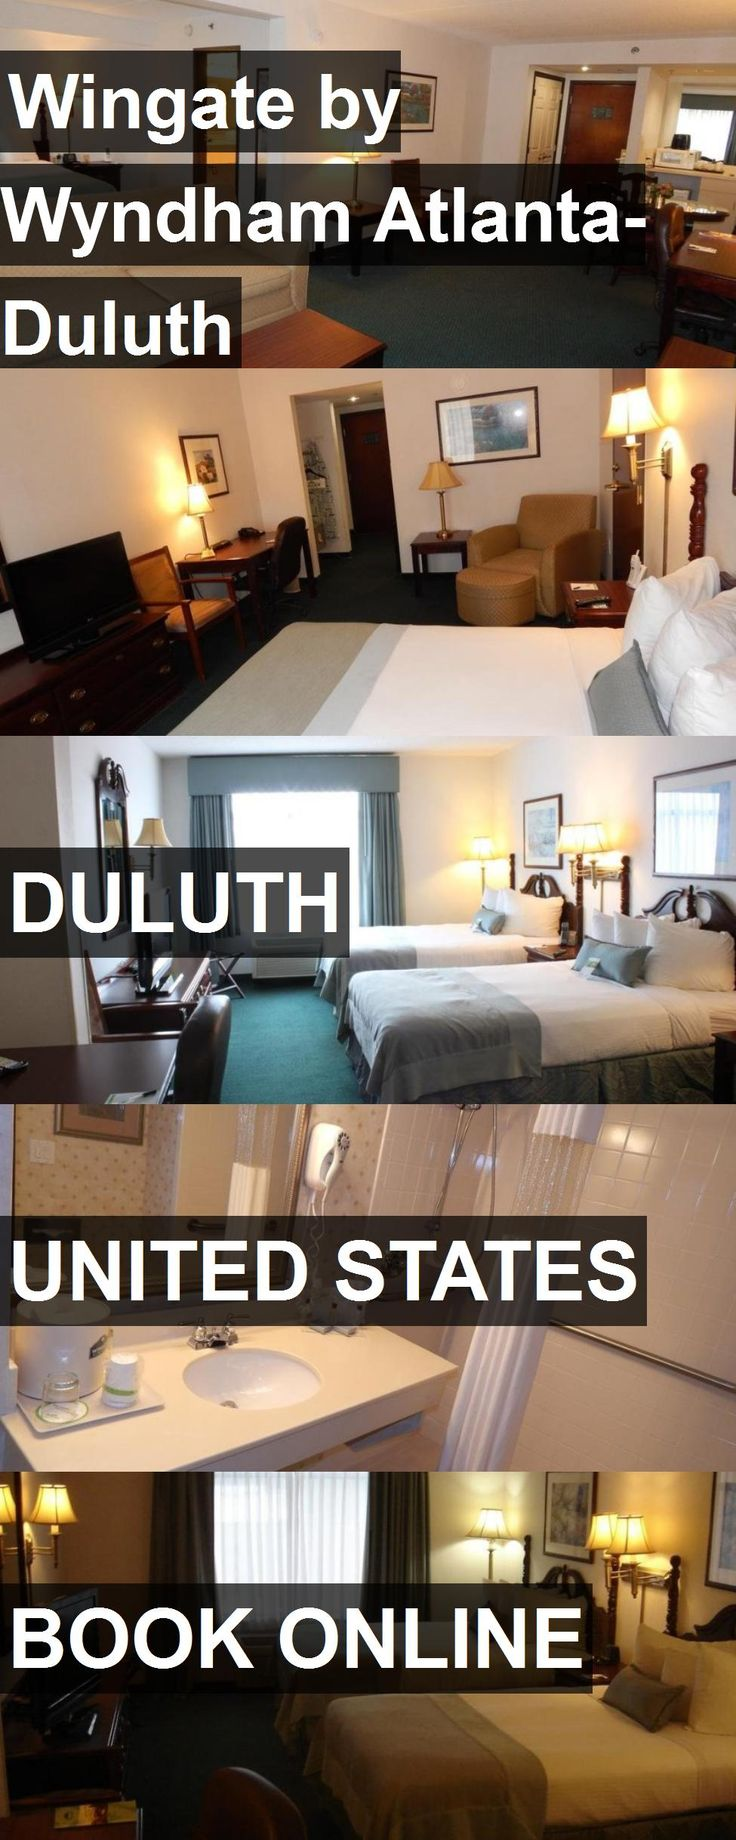 Hotel Wingate by Wyndham Atlanta-Duluth in Duluth, United States. For more information, photos, reviews and best prices please follow the link. #UnitedStates #Duluth #travel #vacation #hotel